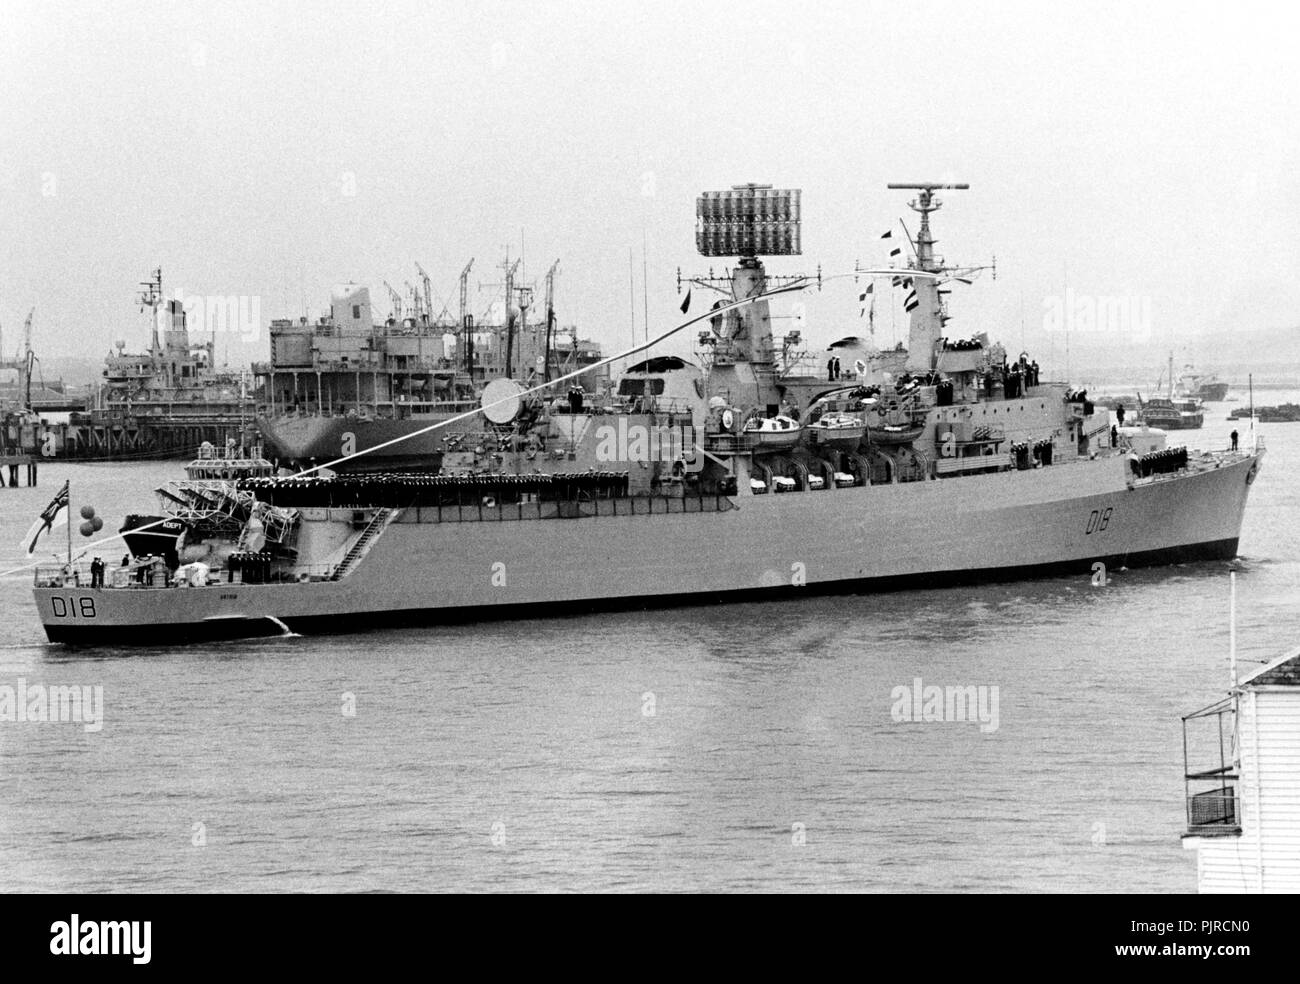 AJAXNETPHOTO. 18TH APRIL, 1984. (PMO1). PORTSMOUTH, ENGLAND. PAYING OFF - THE DESTROYER HMS ANTRIM STREAMS HER PAYING OFF PENDANT AS SHE ENTERS HARBOUR FOR THE LAST TIME AS A SHIP OF HER MAJESTY'S ROYAL NAVY.VESSEL RECEIVED DIRECT BOMB HOT DURING FALKLAND ISLANDS CONFLICT. PAID OFF SUBJECT TO SALE TO CHILEAN NAVY.